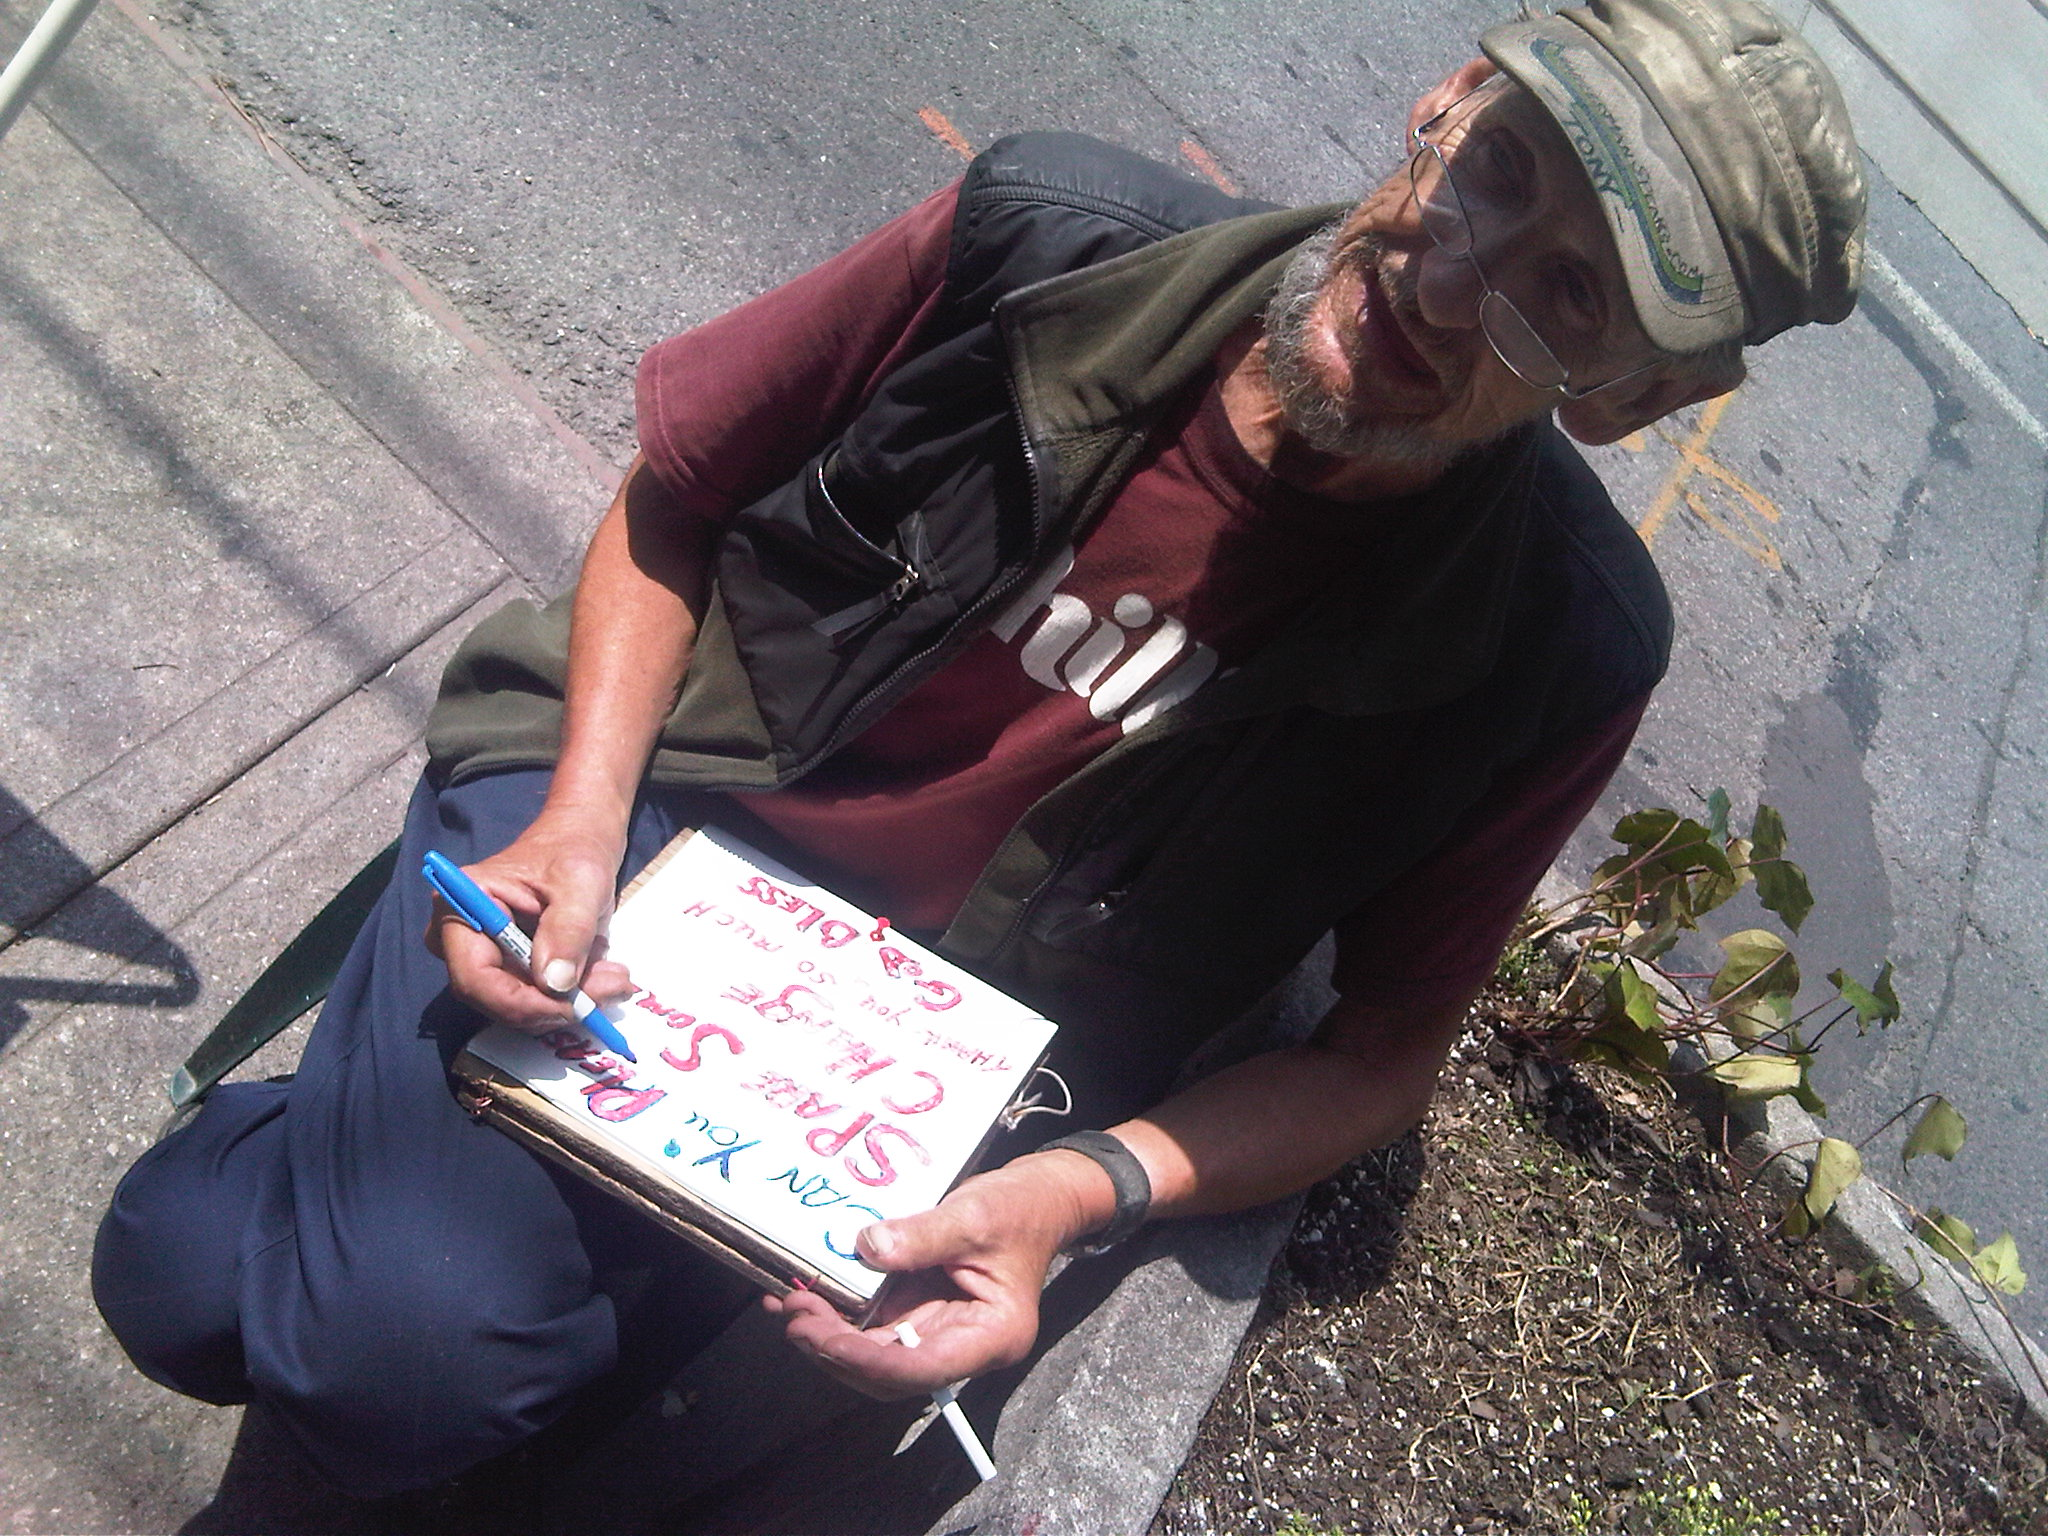 Tony brightening up his sign - Aug 7 2009